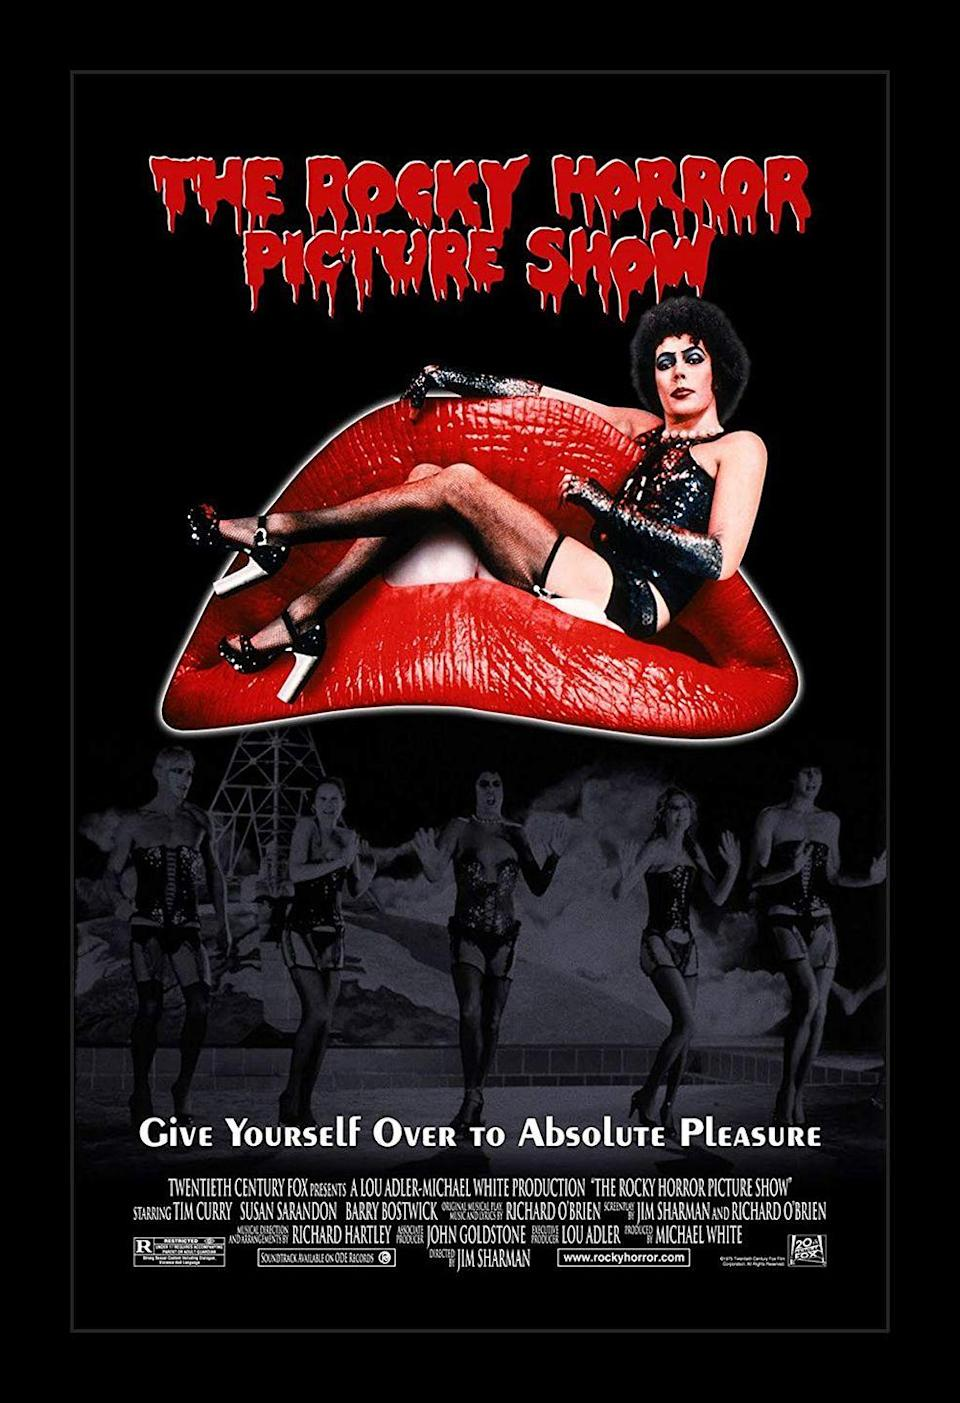 "<p>There are some dedicated RHPS fans out there who may be ready to argue that this should've been at the top of the list. Over 30 years since it's initial release, audiences still pack theaters for midnight screenings across the country. Folks can't get enough of Tim Curry as Dr. Frank-N-Furter putting Brad (Barry Bostwick) and Janet (Susan Sarandon) through a night of insanity when all they needed was a tow truck. It may be fun to watch from the comfort of your couch, but it's an experience to see it in a theater with people who can act out every scene.</p><p><a class=""link rapid-noclick-resp"" href=""https://www.amazon.com/Rocky-Horror-Picture-Show/dp/B001HLZMUE/ref=sr_1_1?tag=syn-yahoo-20&ascsubtag=%5Bartid%7C10063.g.34344525%5Bsrc%7Cyahoo-us"" rel=""nofollow noopener"" target=""_blank"" data-ylk=""slk:WATCH NOW"">WATCH NOW</a></p>"